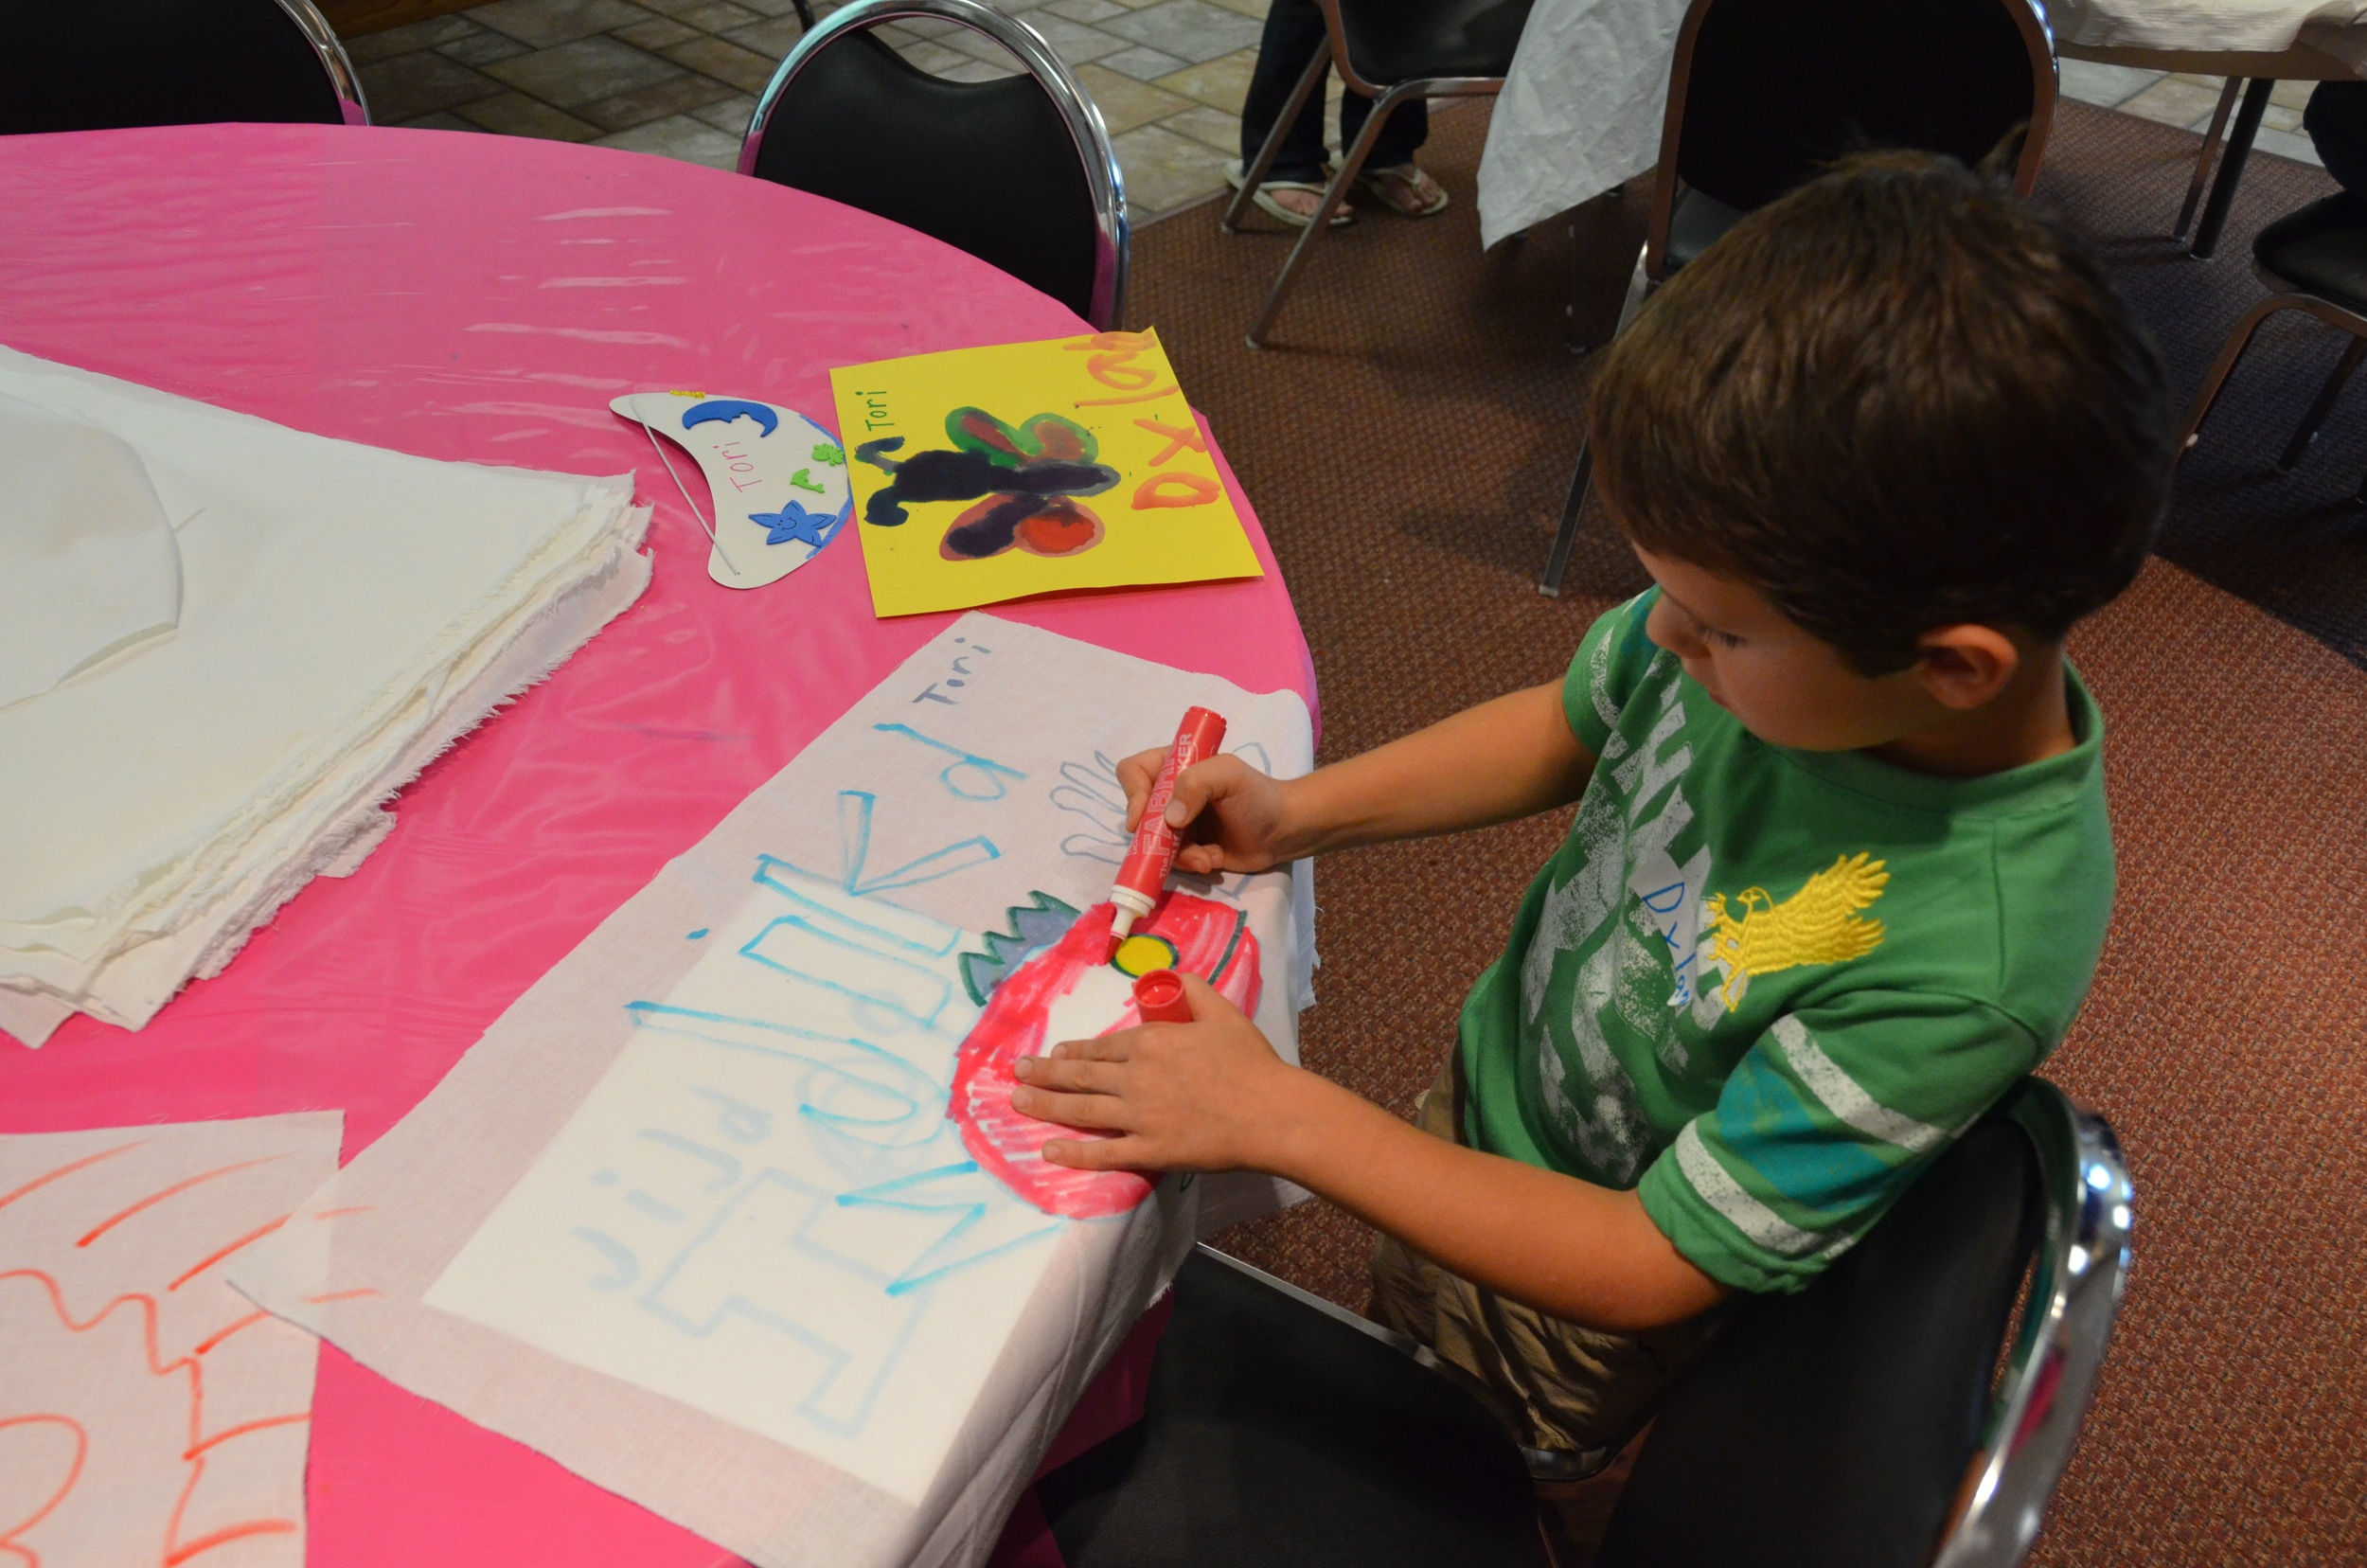 KIds ARt Church 9 12 2011   95254.jpg